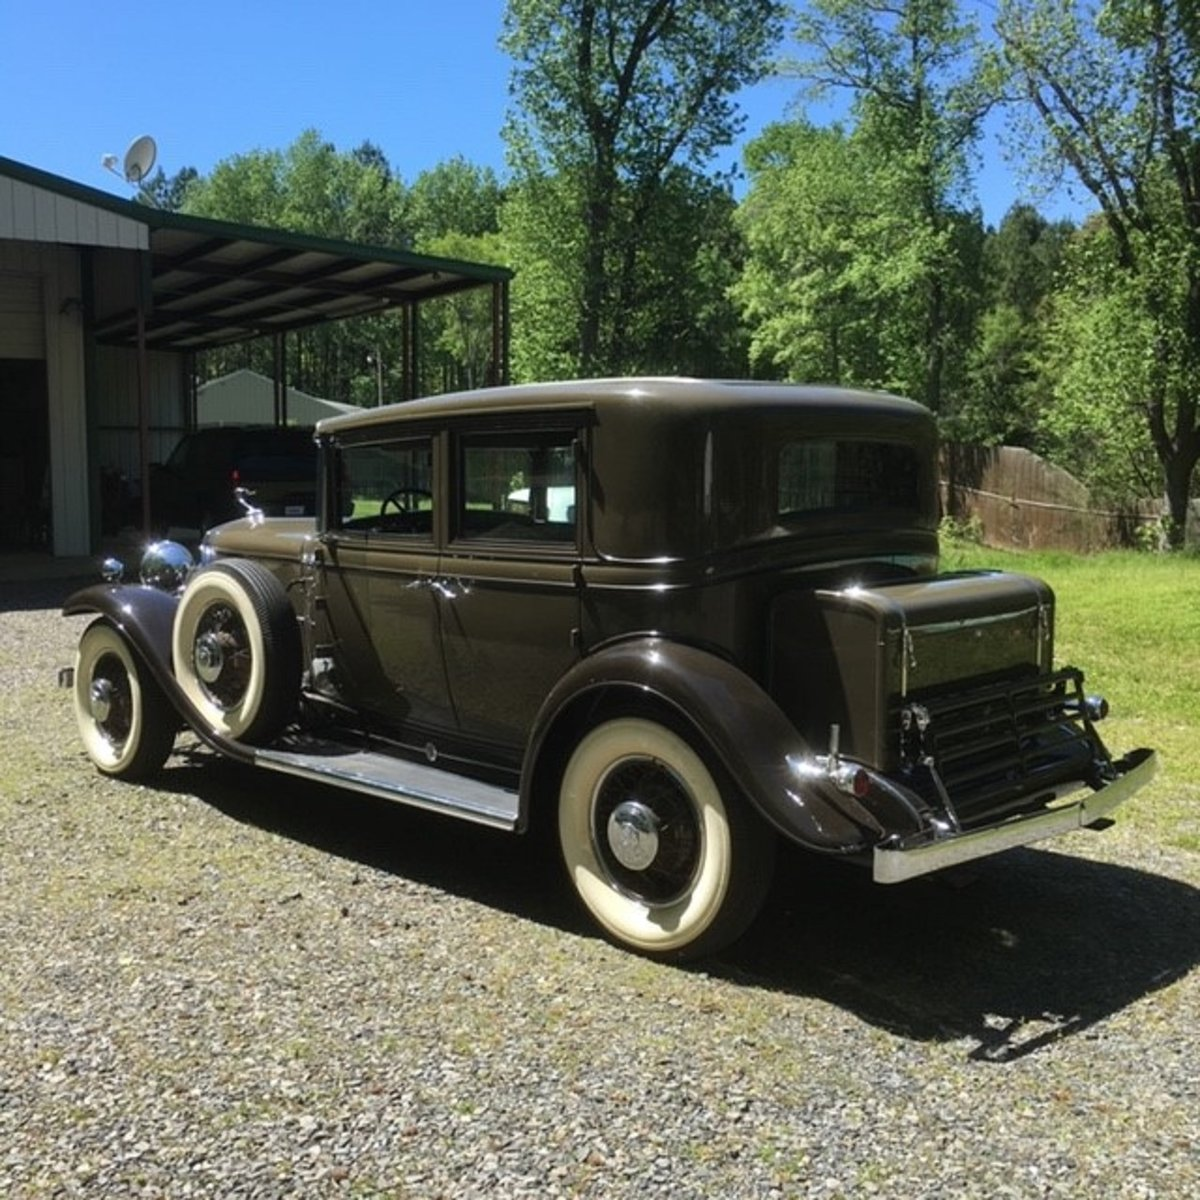 1931 Cadillac 370A 4DR Sedan For Sale (picture 4 of 6)